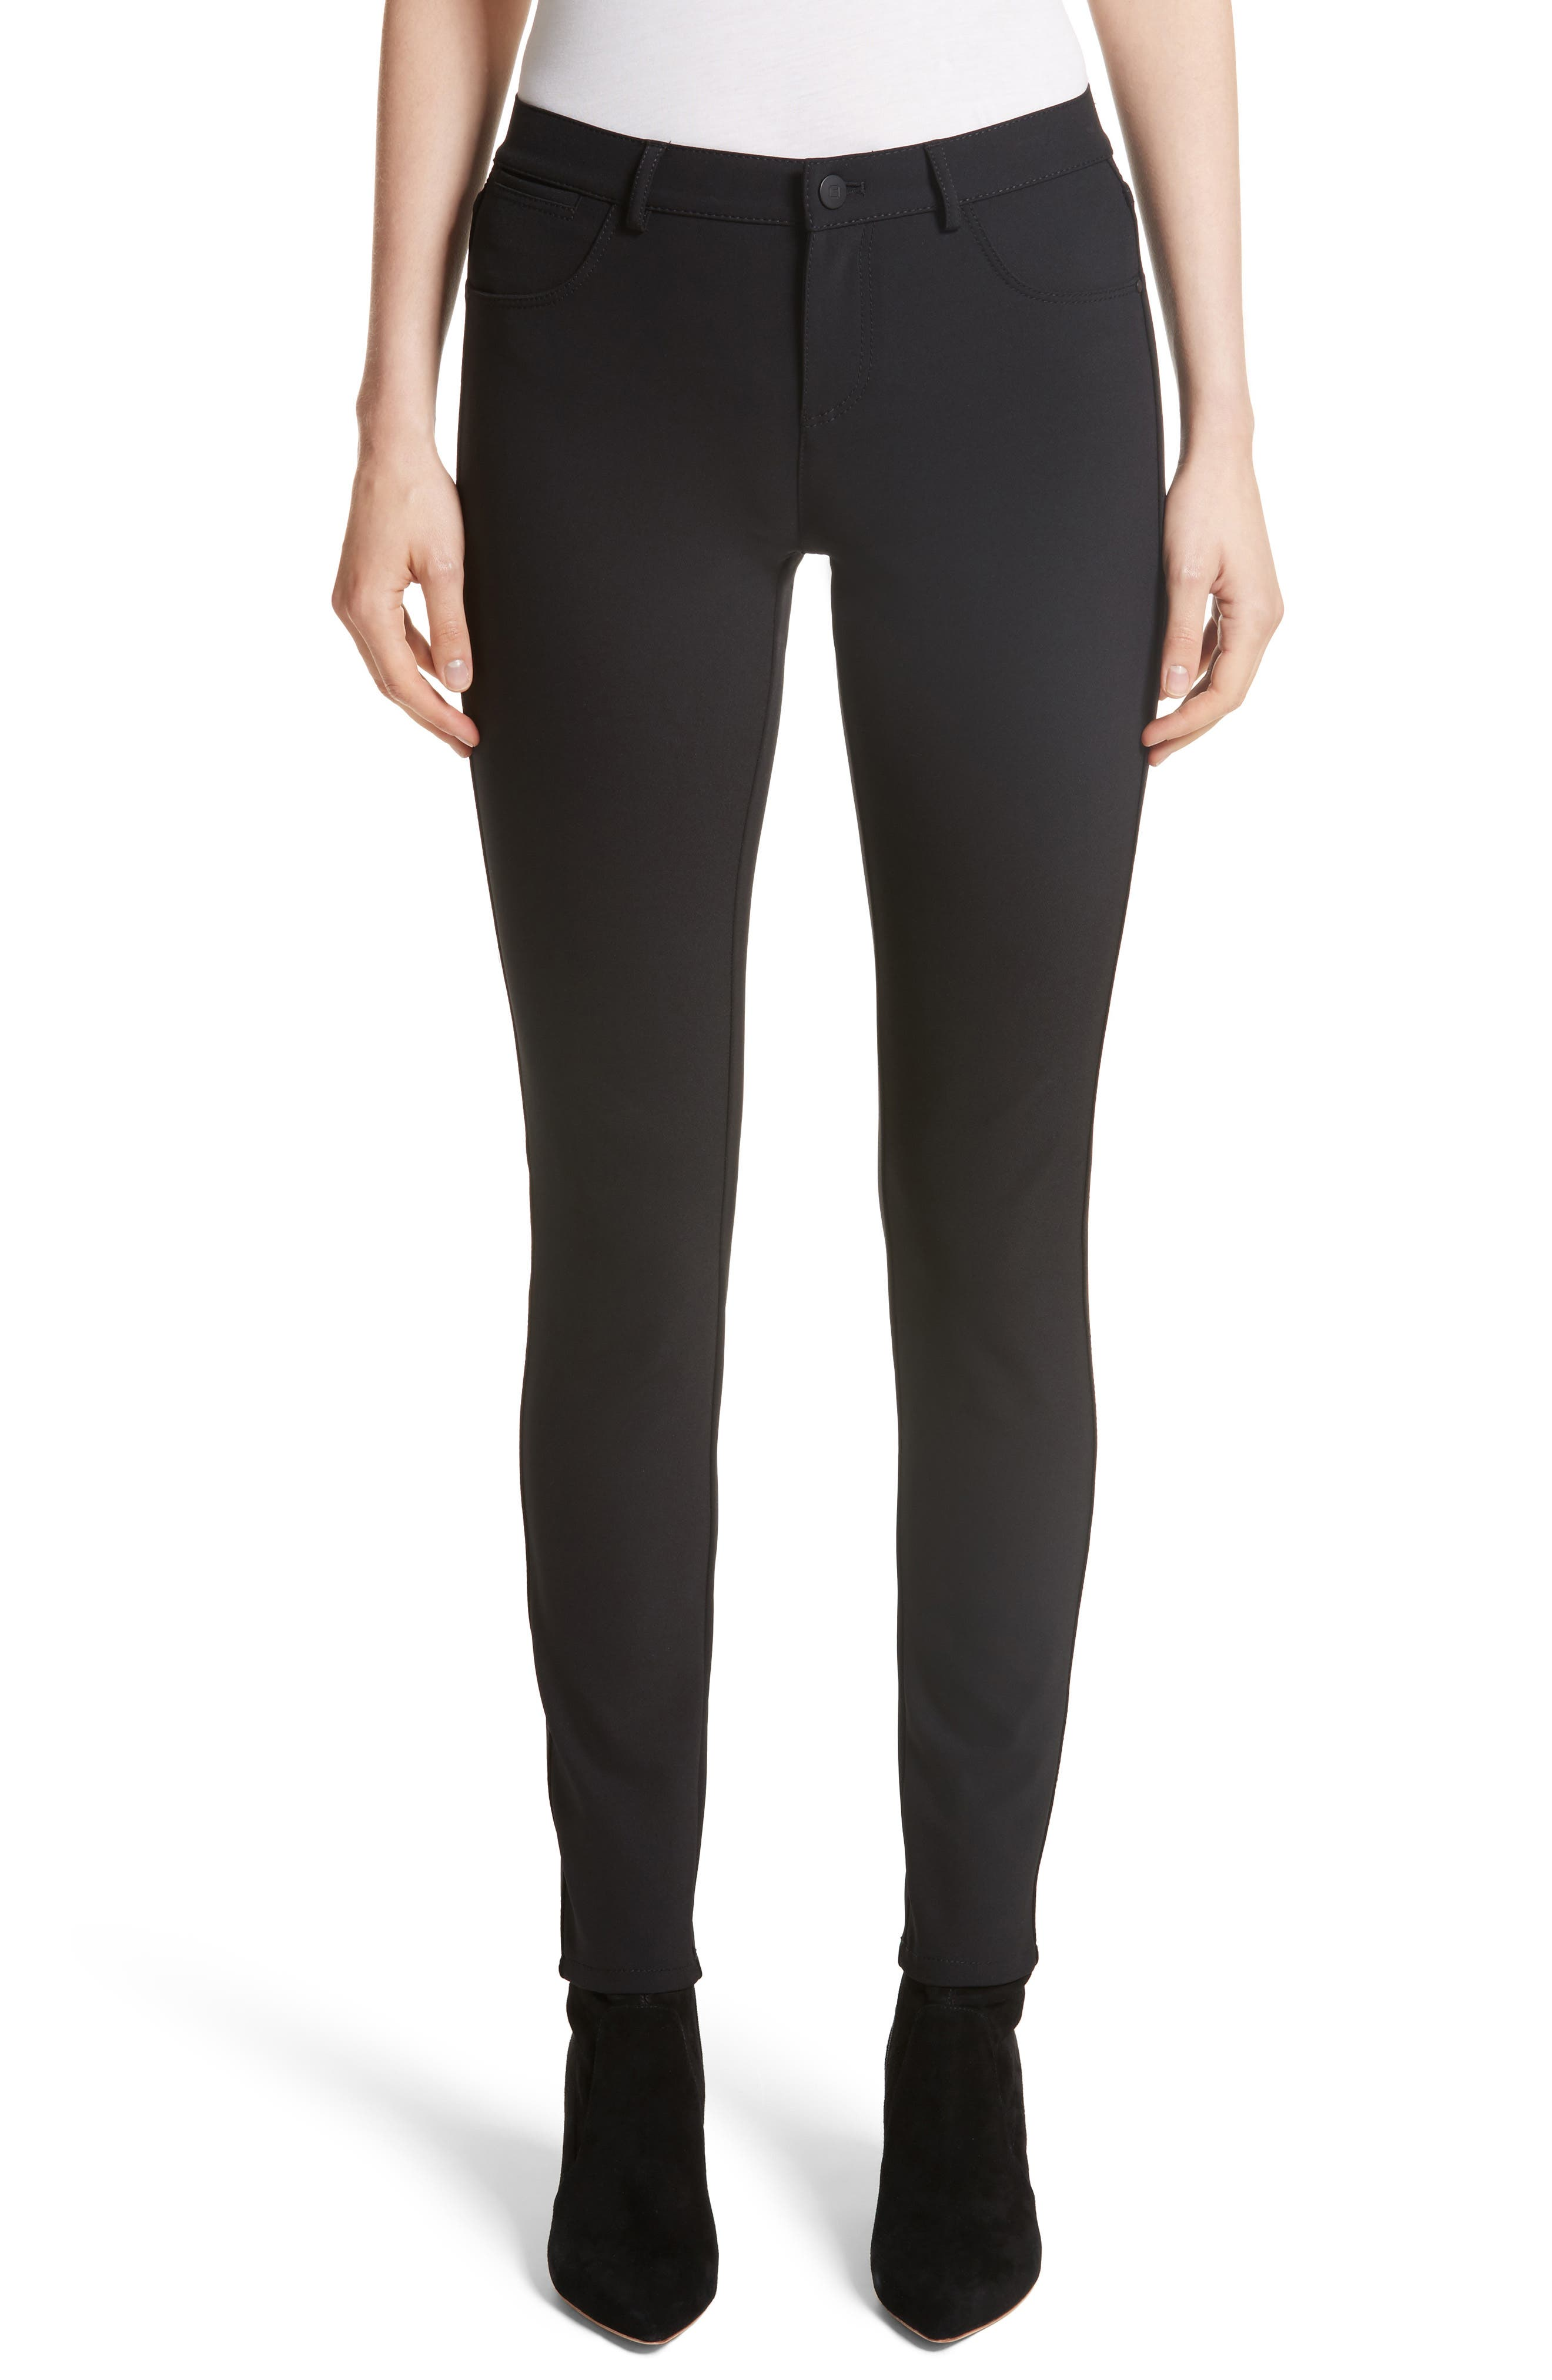 Mercer Acclaimed Stretch Mid-Rise Skinny Jeans in Black